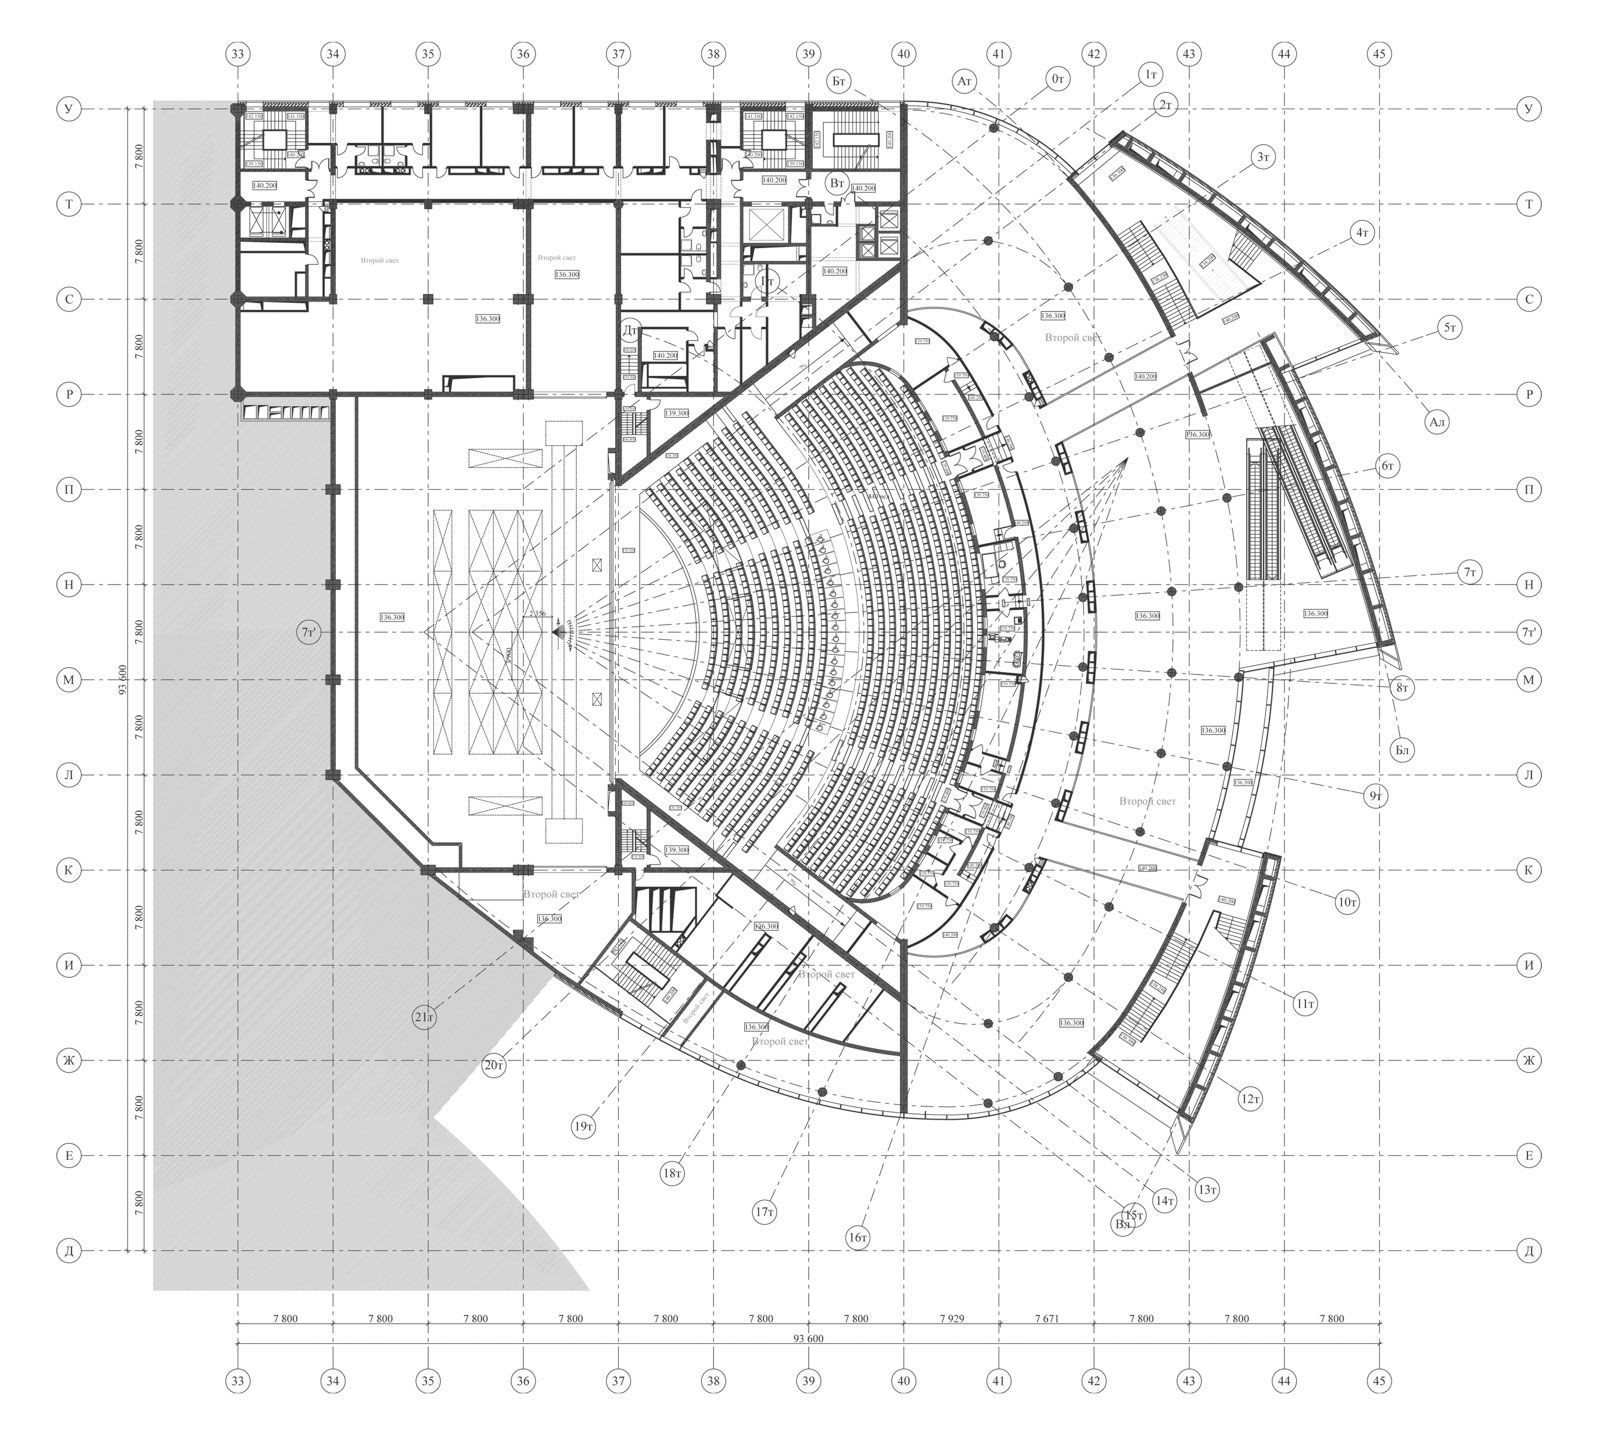 Pin by ARCHSTRUKTURA on Theatre | Pinterest | Architecture ...